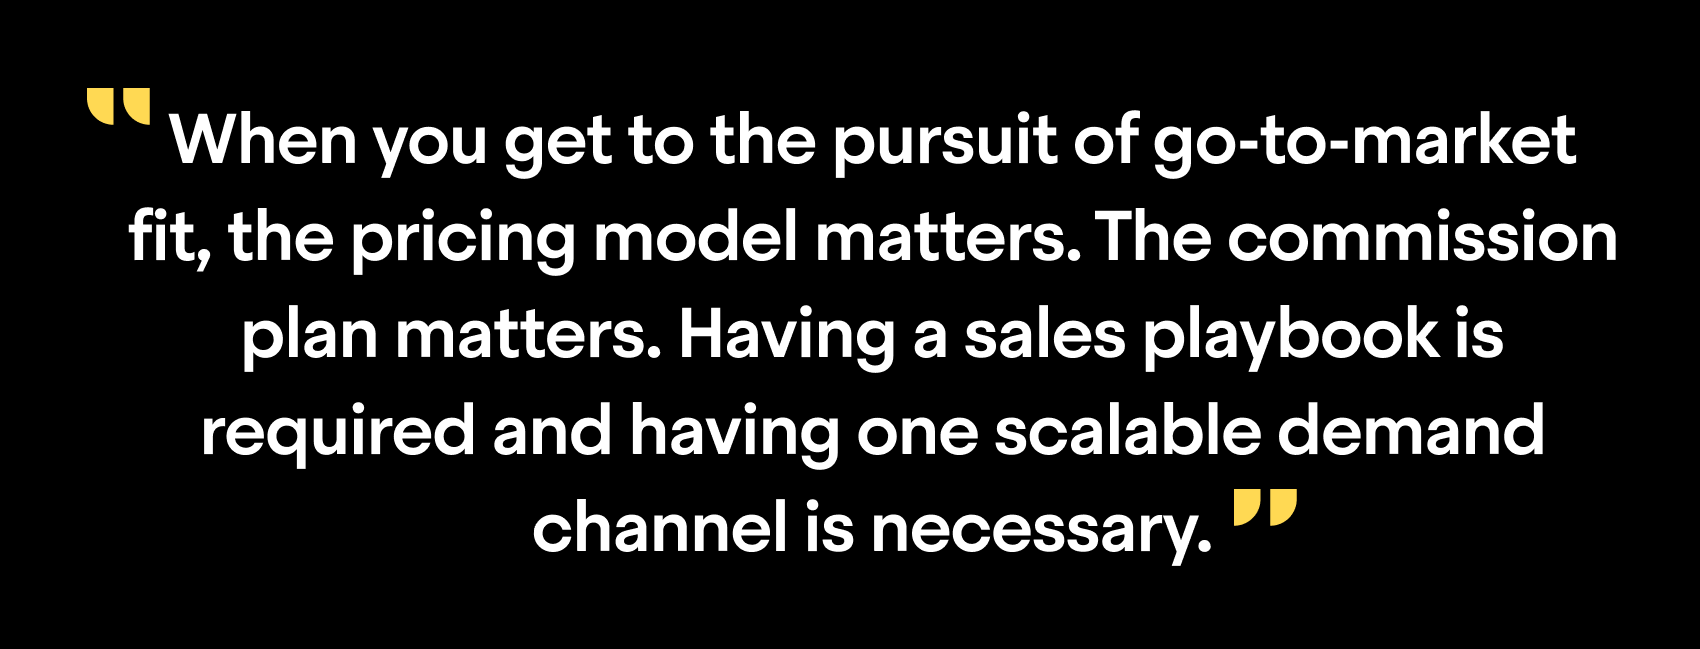 """When you get to the pursuit of go-to-market fit, the procing model matters. The commission plan matters. Having a sales playbook is required and having one scalable demand channel is necessary."""